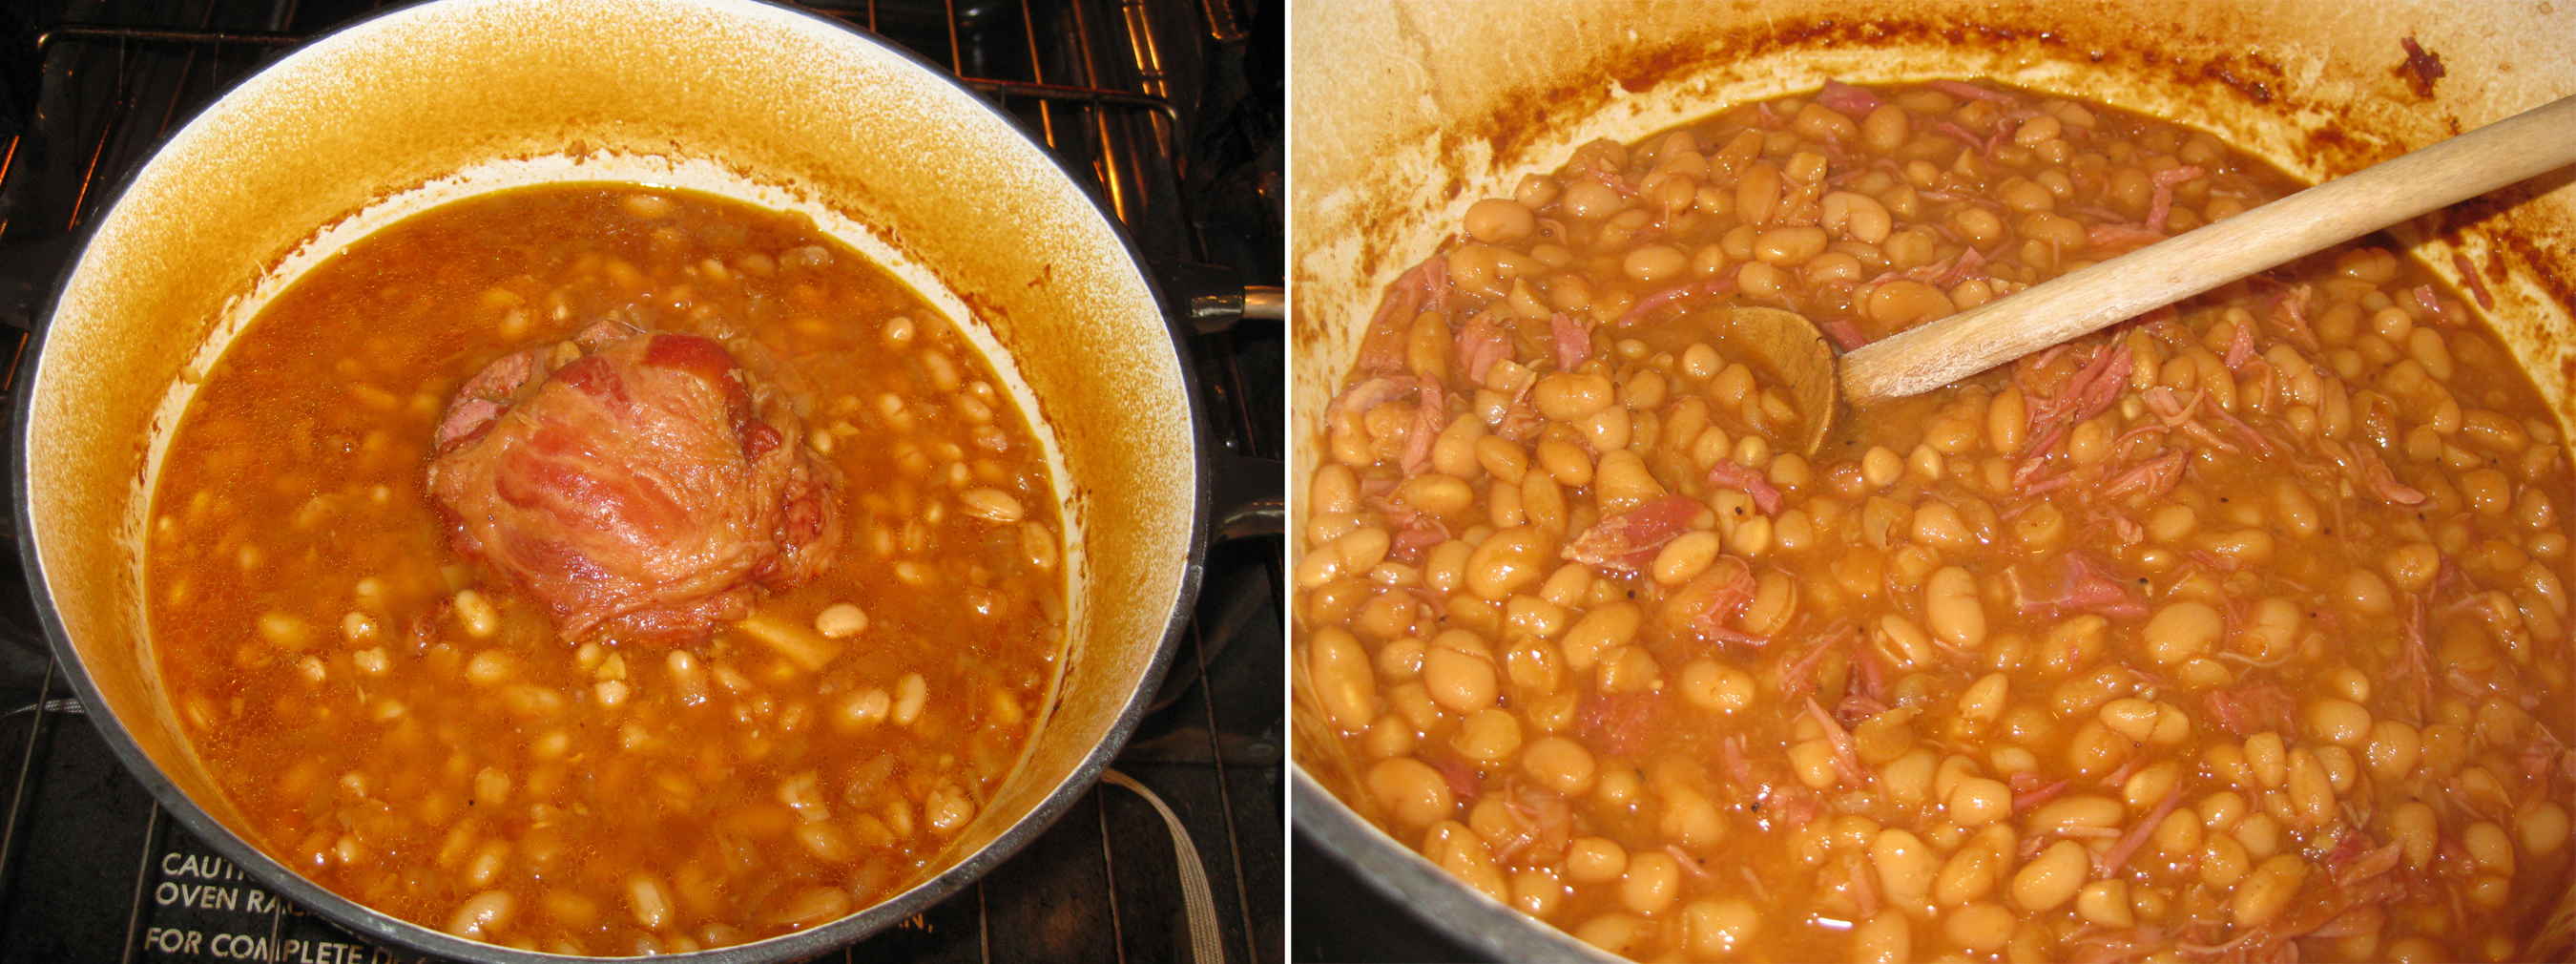 Homemade Spicy Baked Beans With Potato Cakes Gordon Ramsay